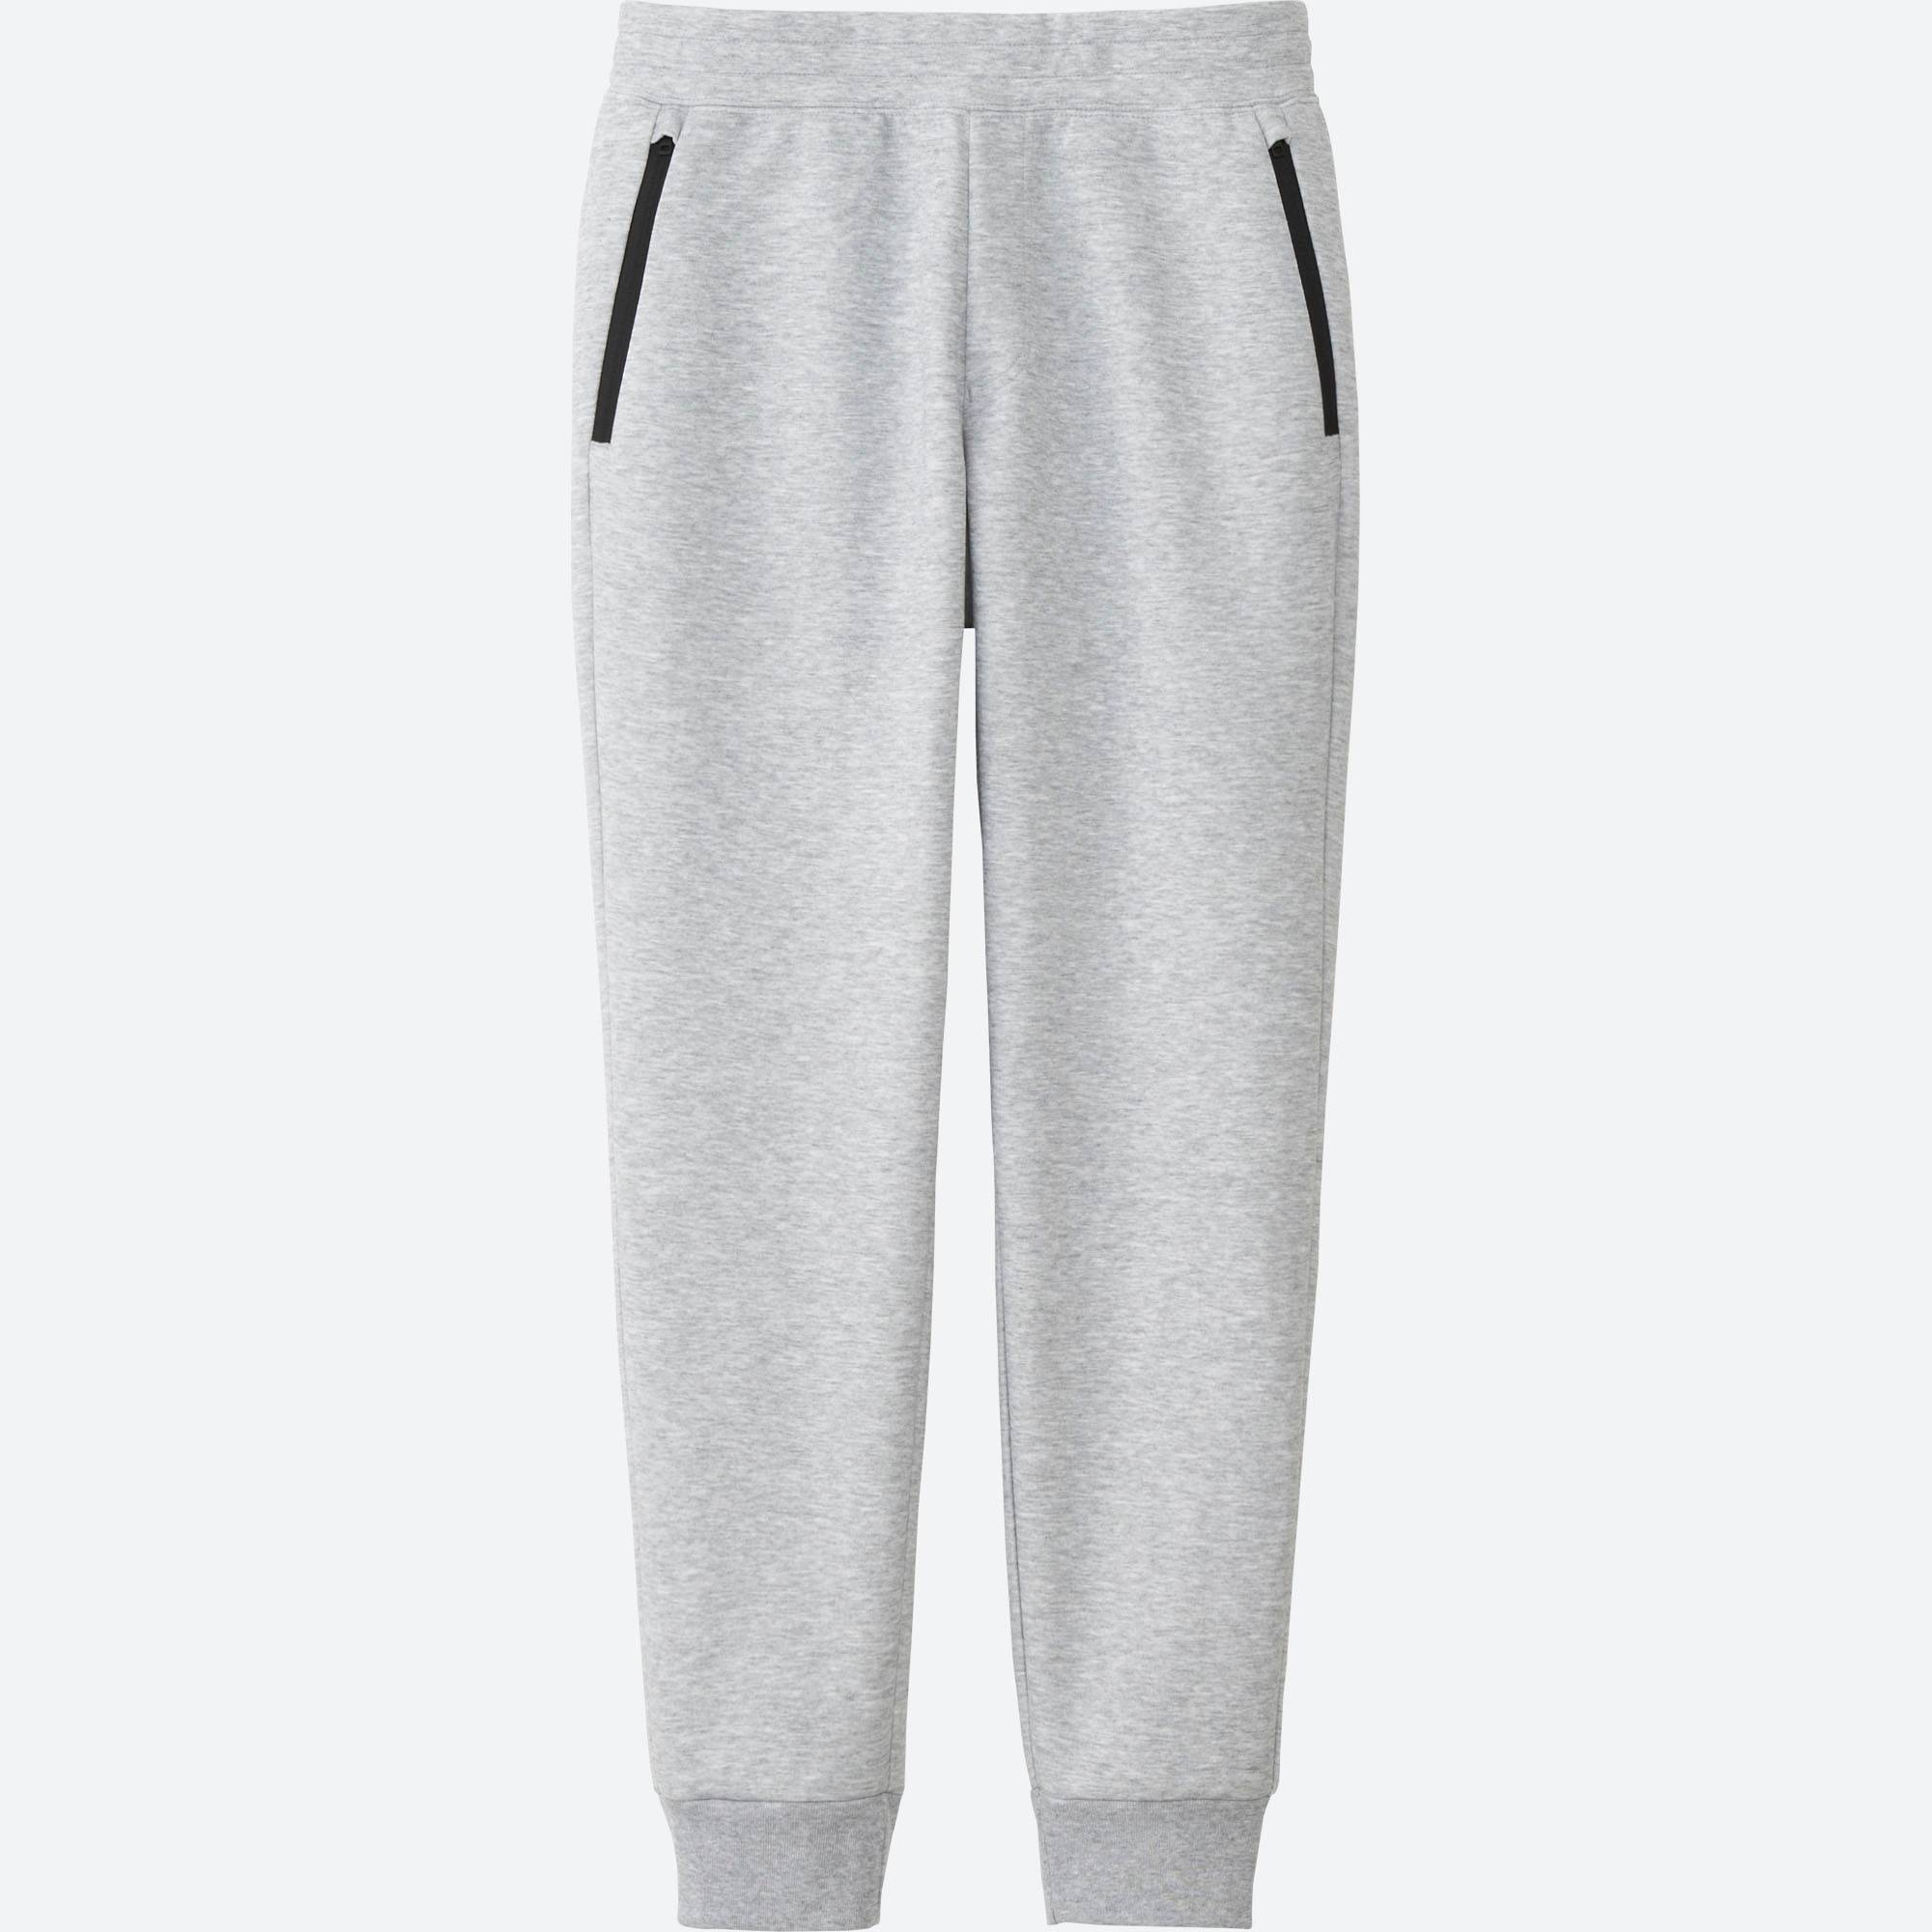 Dry Stretch Sweatpants